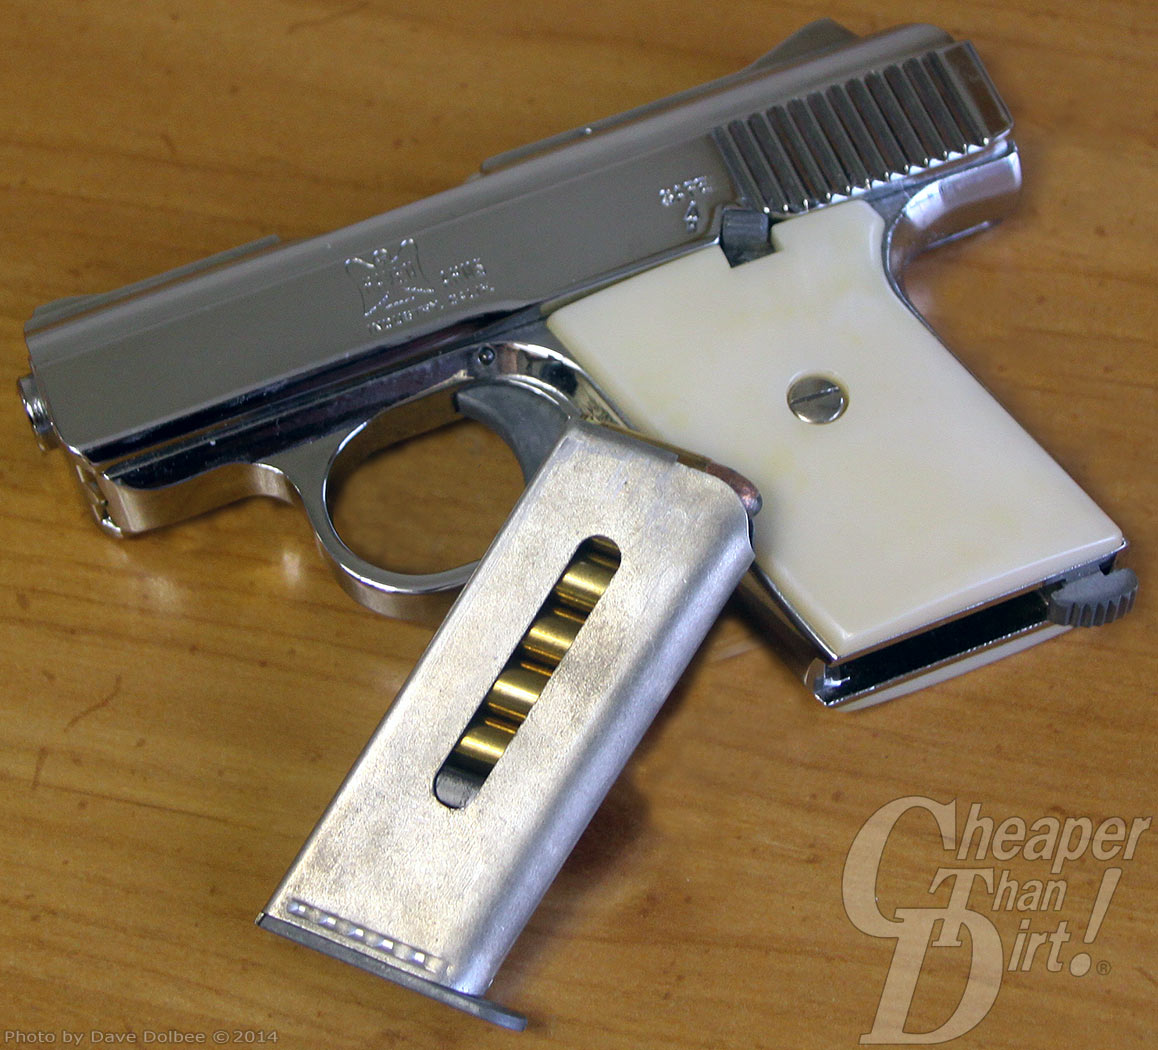 Raven Arms .25 Semi-automatic pistol